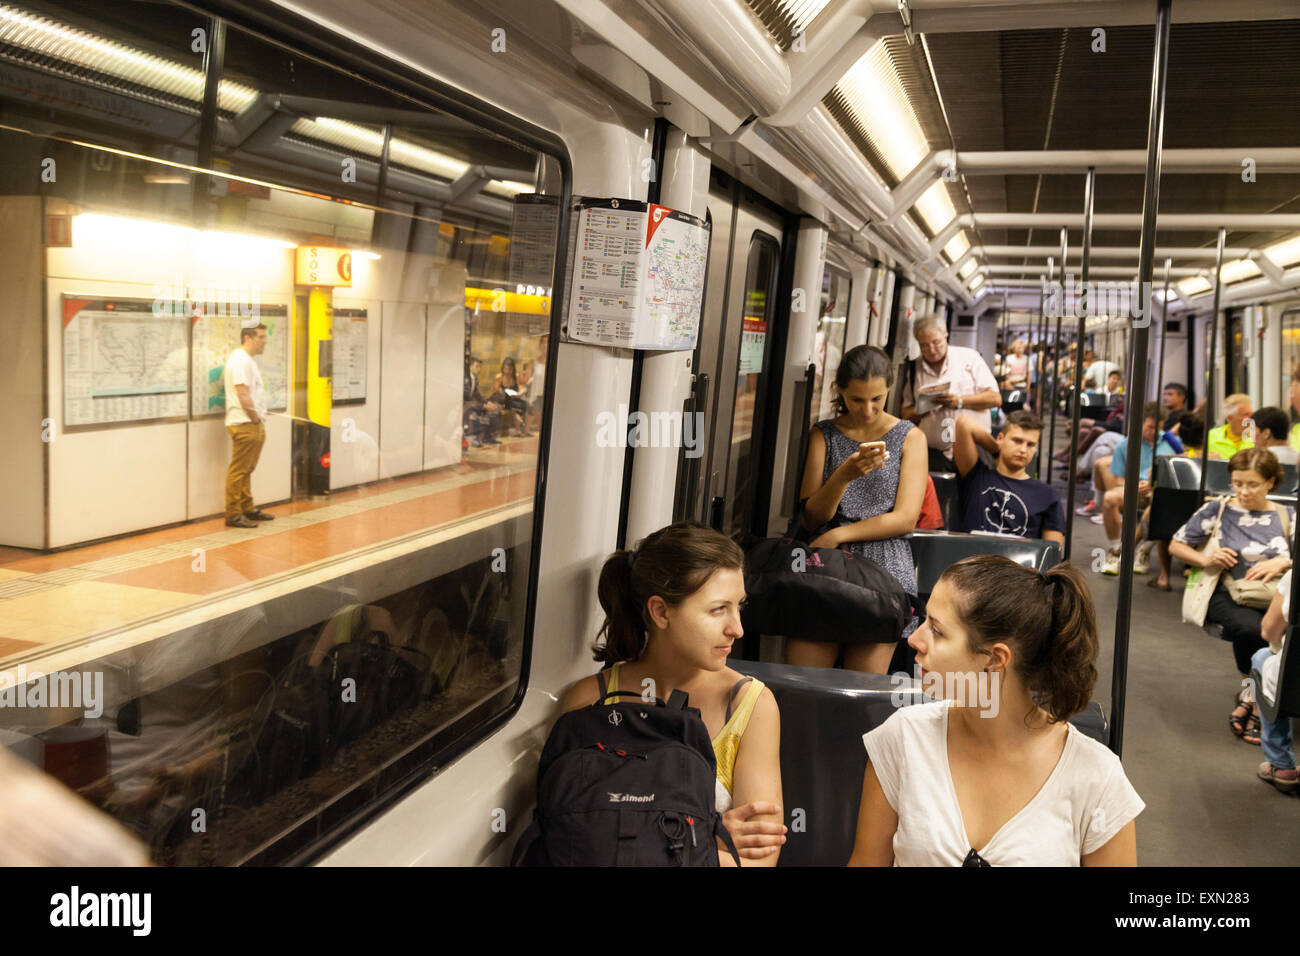 People in a train carriage barcelona metro barcelona spain europe stock photo royalty free - Carrage metro ...